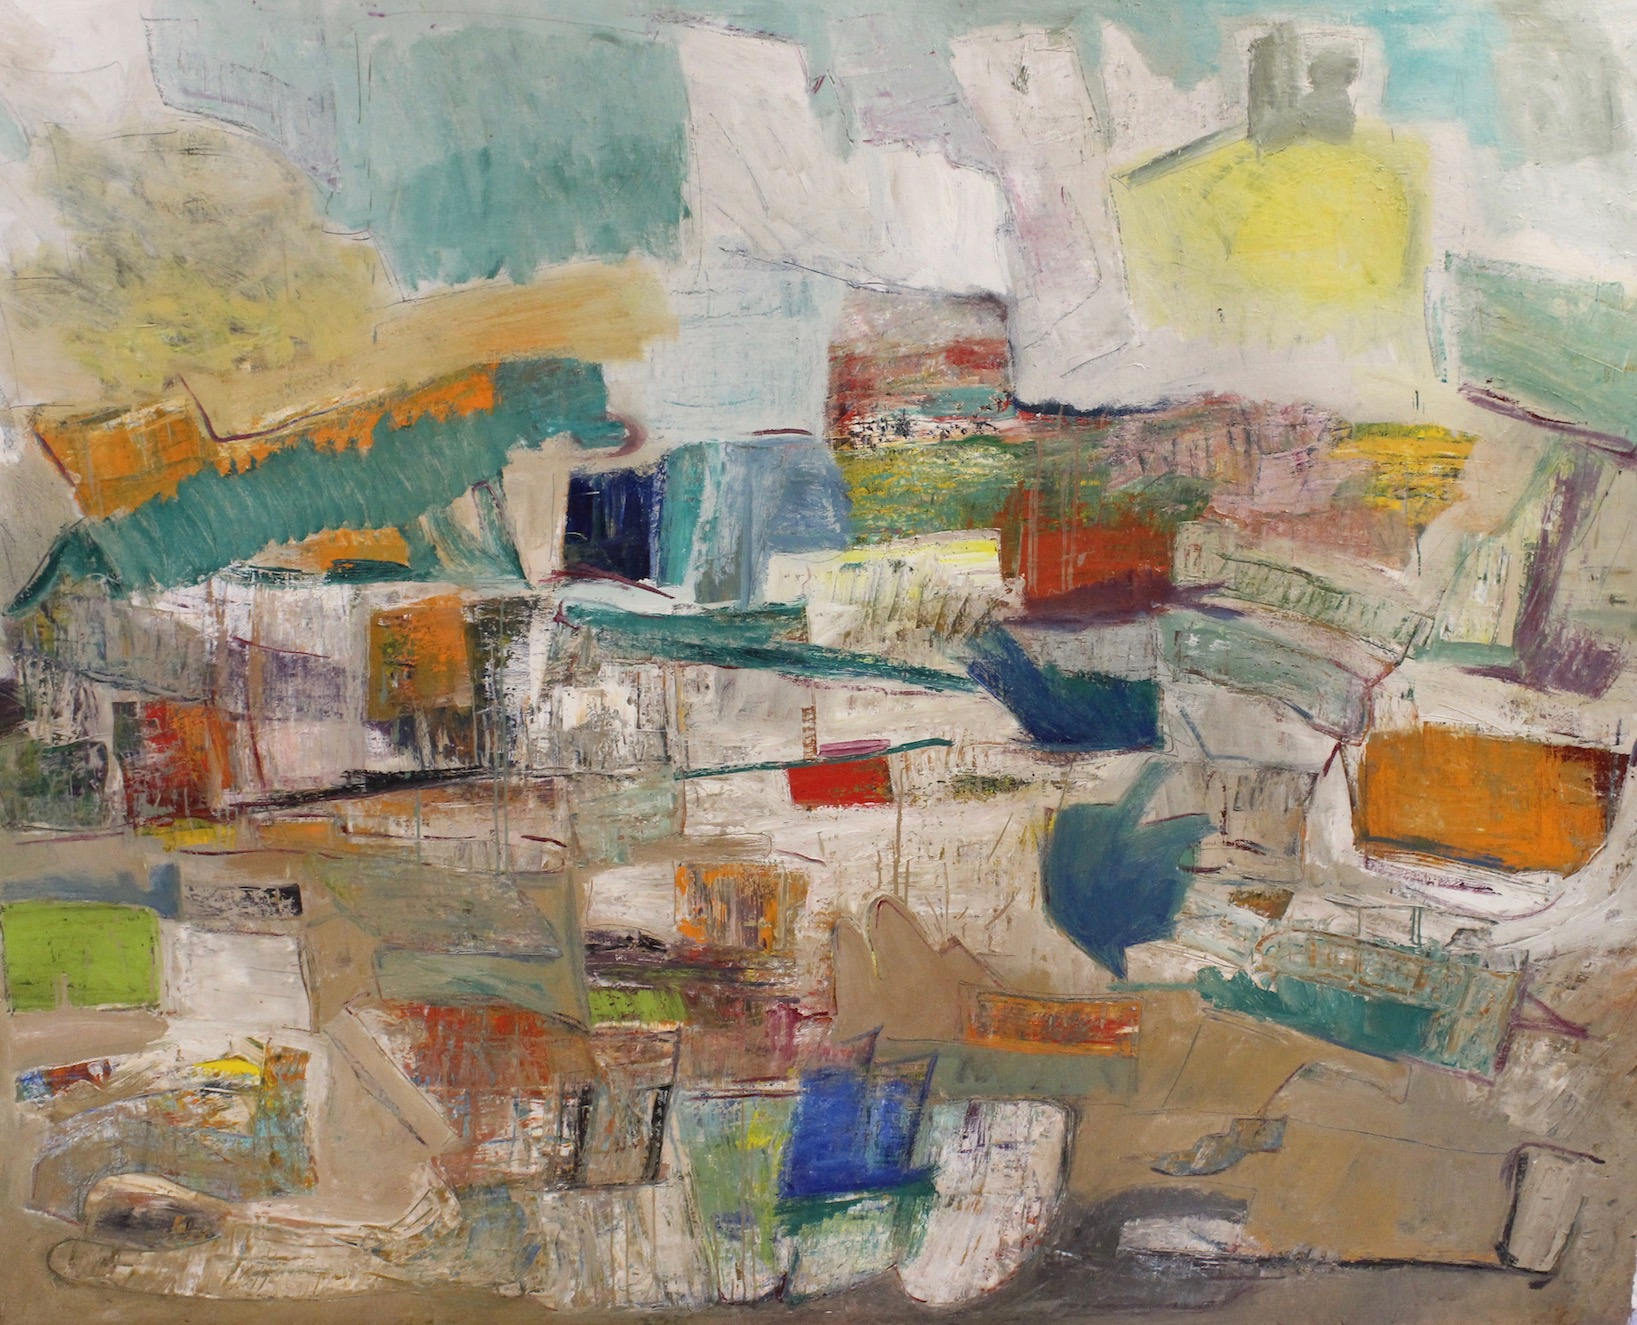 Chris Easley: New Mexico 2